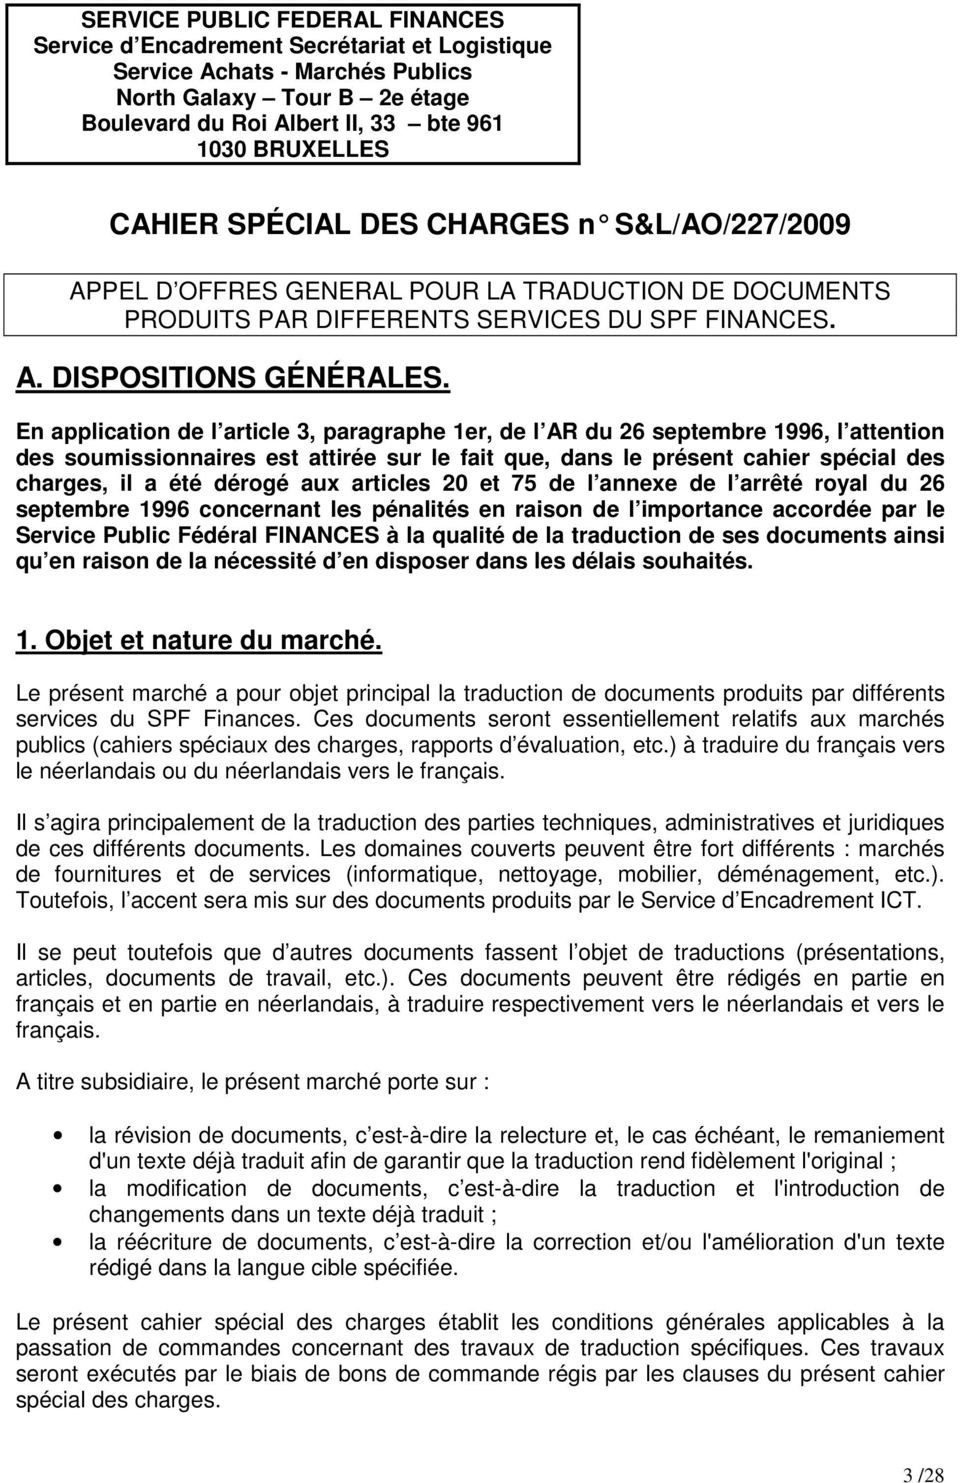 En application de l article 3, paragraphe 1er, de l AR du 26 septembre 1996, l attention des soumissionnaires est attirée sur le fait que, dans le présent cahier spécial des charges, il a été dérogé